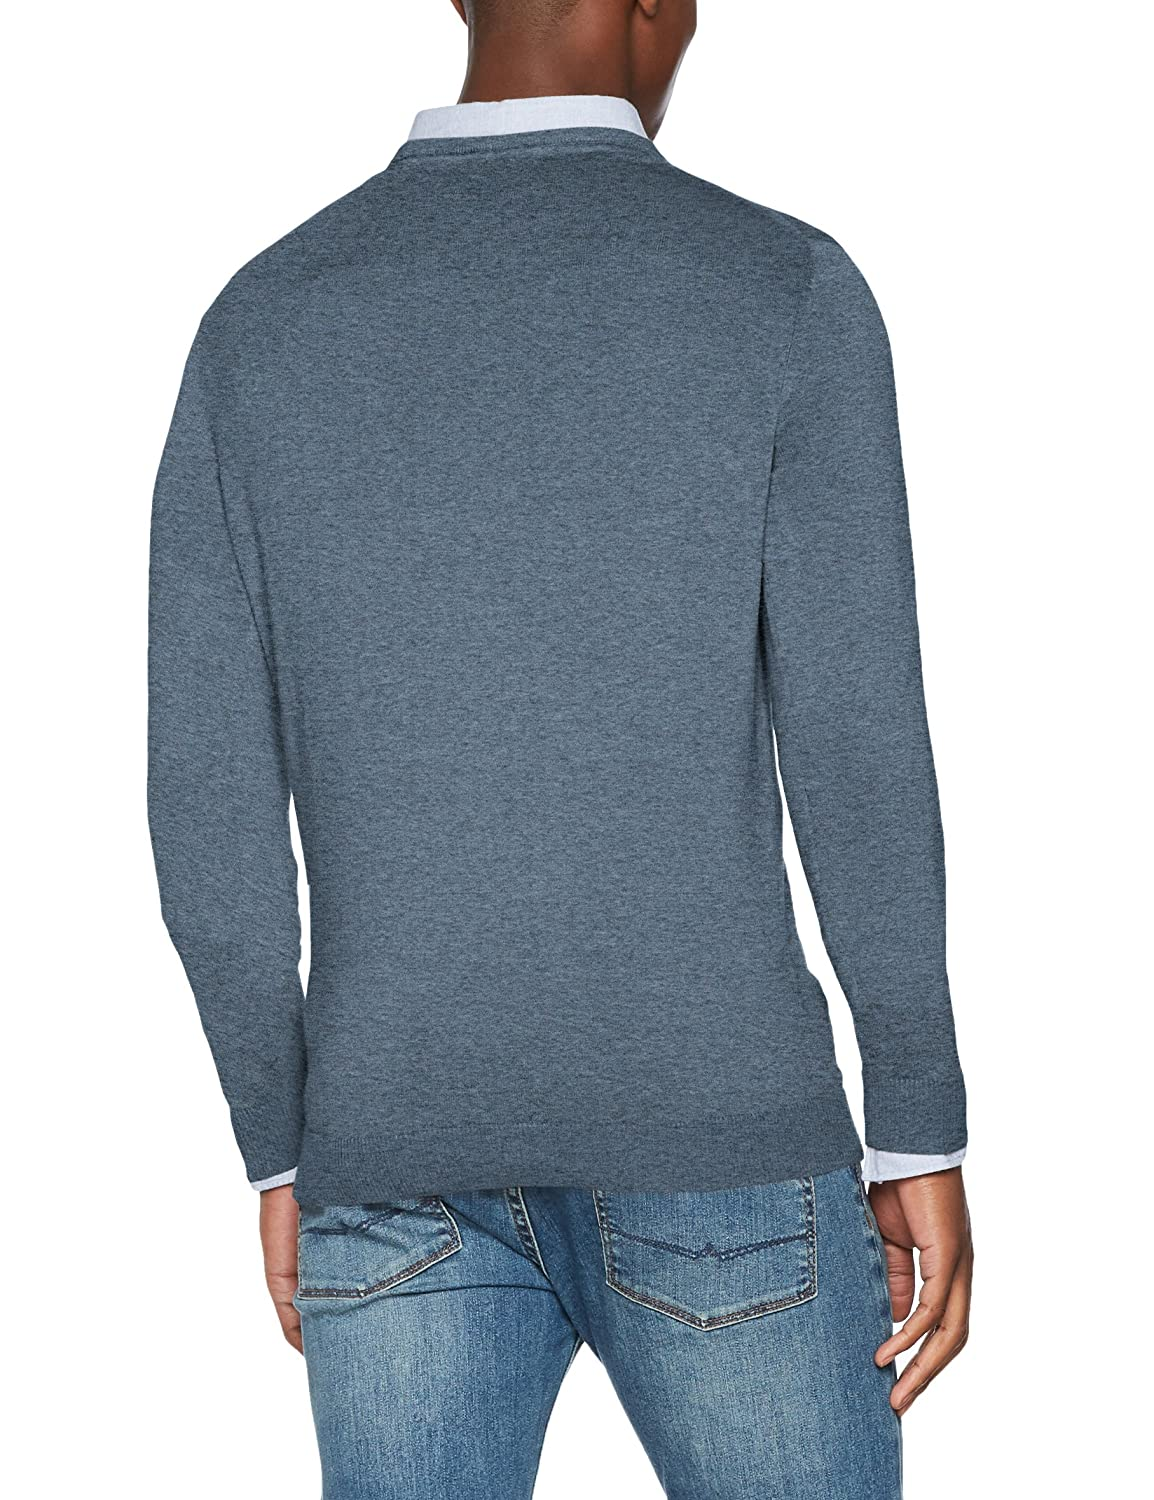 Shhnewdean Crew Neck Noos, Suéter para Hombre, Verde (Forest Night), Large Selected